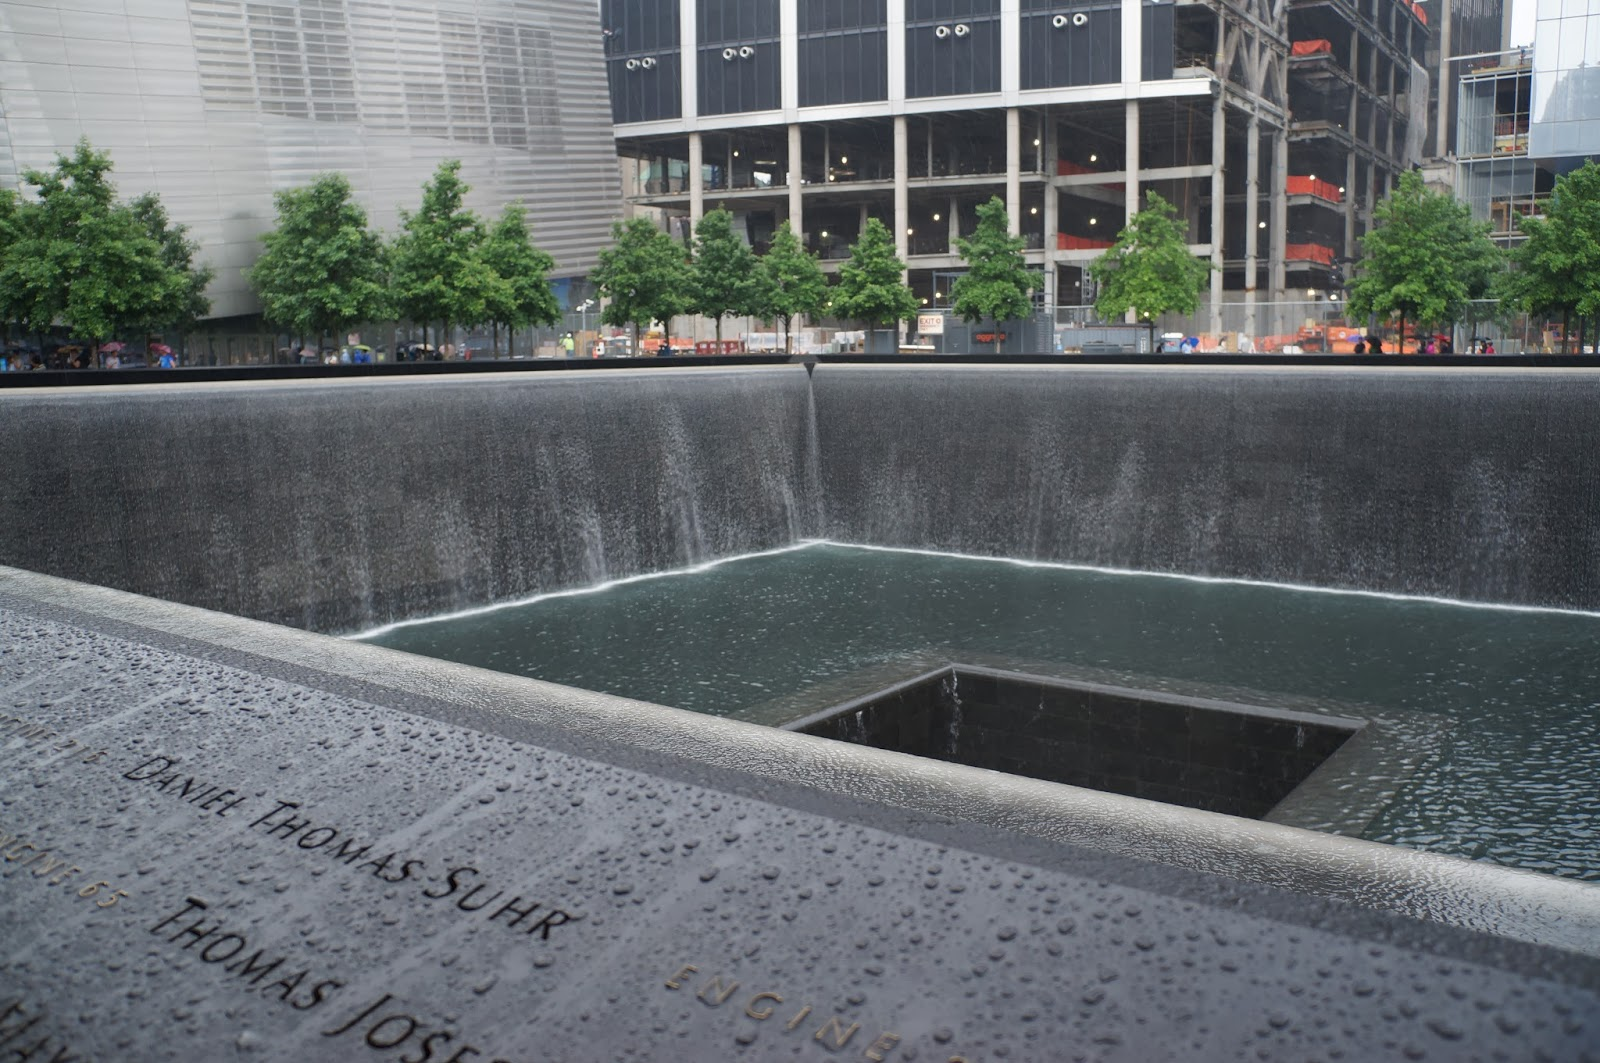 9/11 memorial, ground zero, fountains, holes, squares, names, twin towers, world trade center, centre, NYC, New York, 10 free things to do, free things to do in NYC, travel, New York, explore, adventures, photography, usa, tourism, tourists,